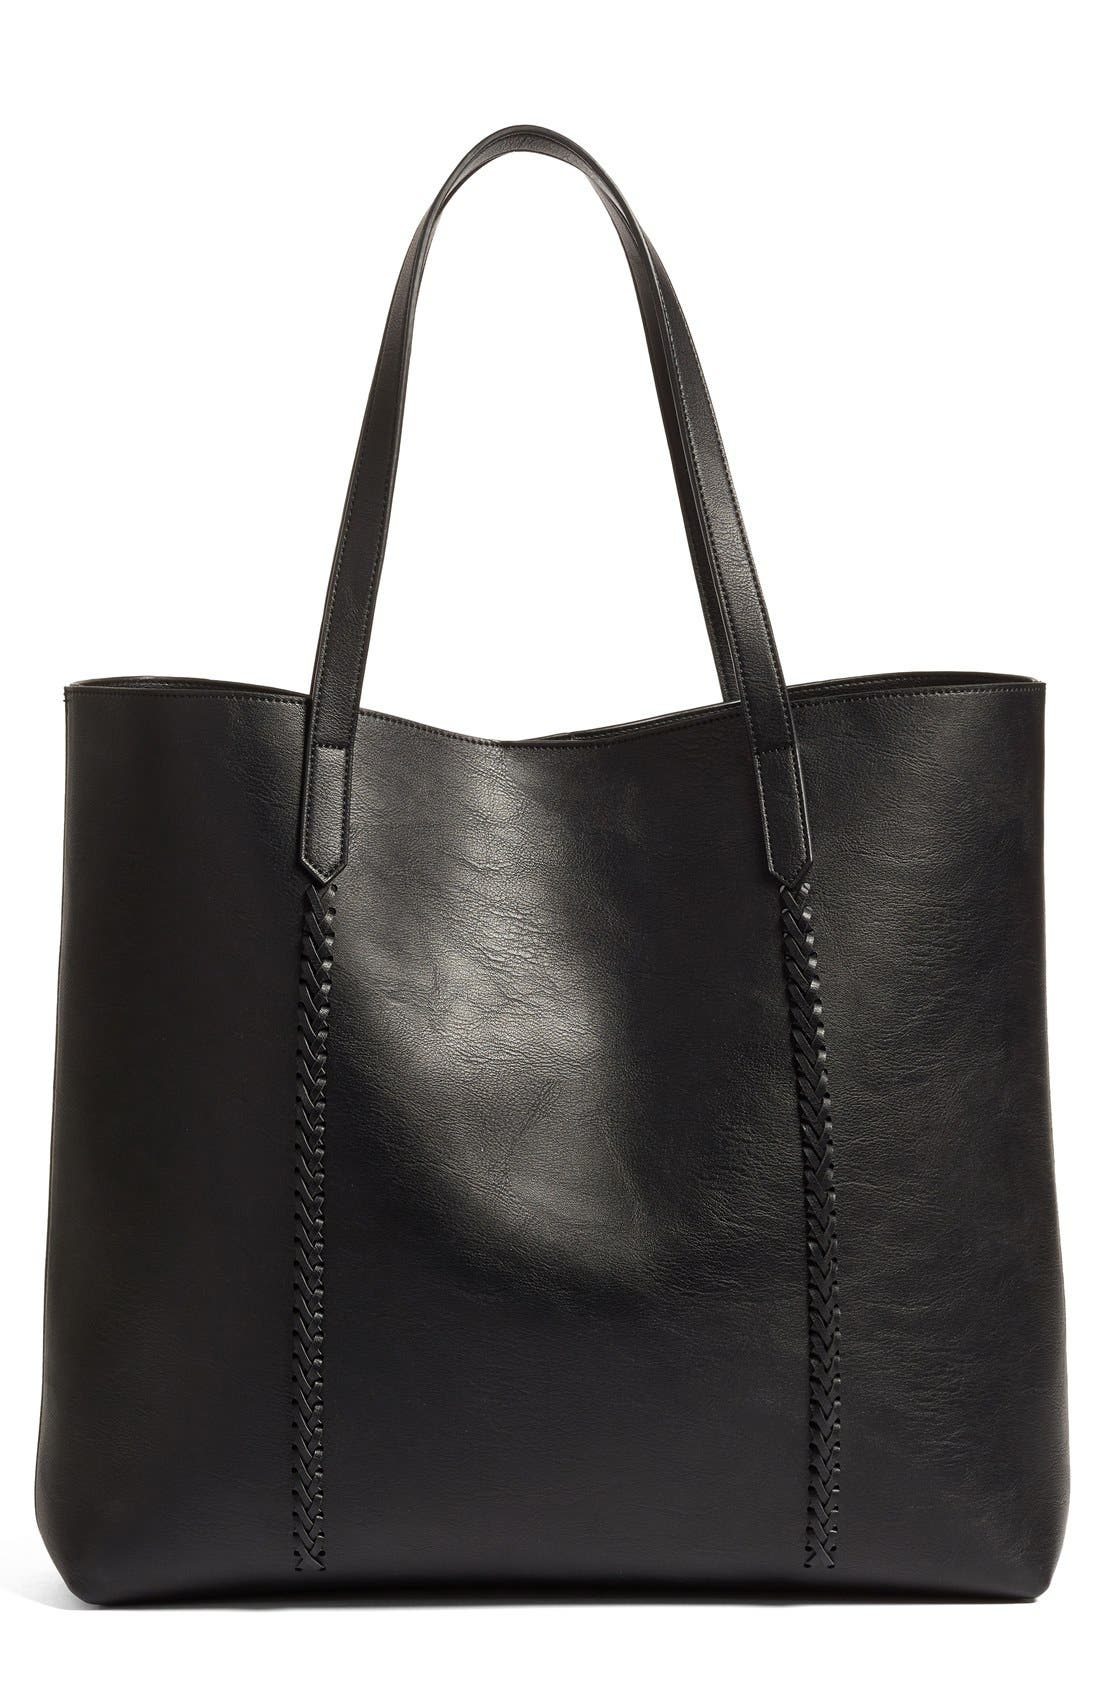 Main Image - Phase 3 Faux Leather Tote